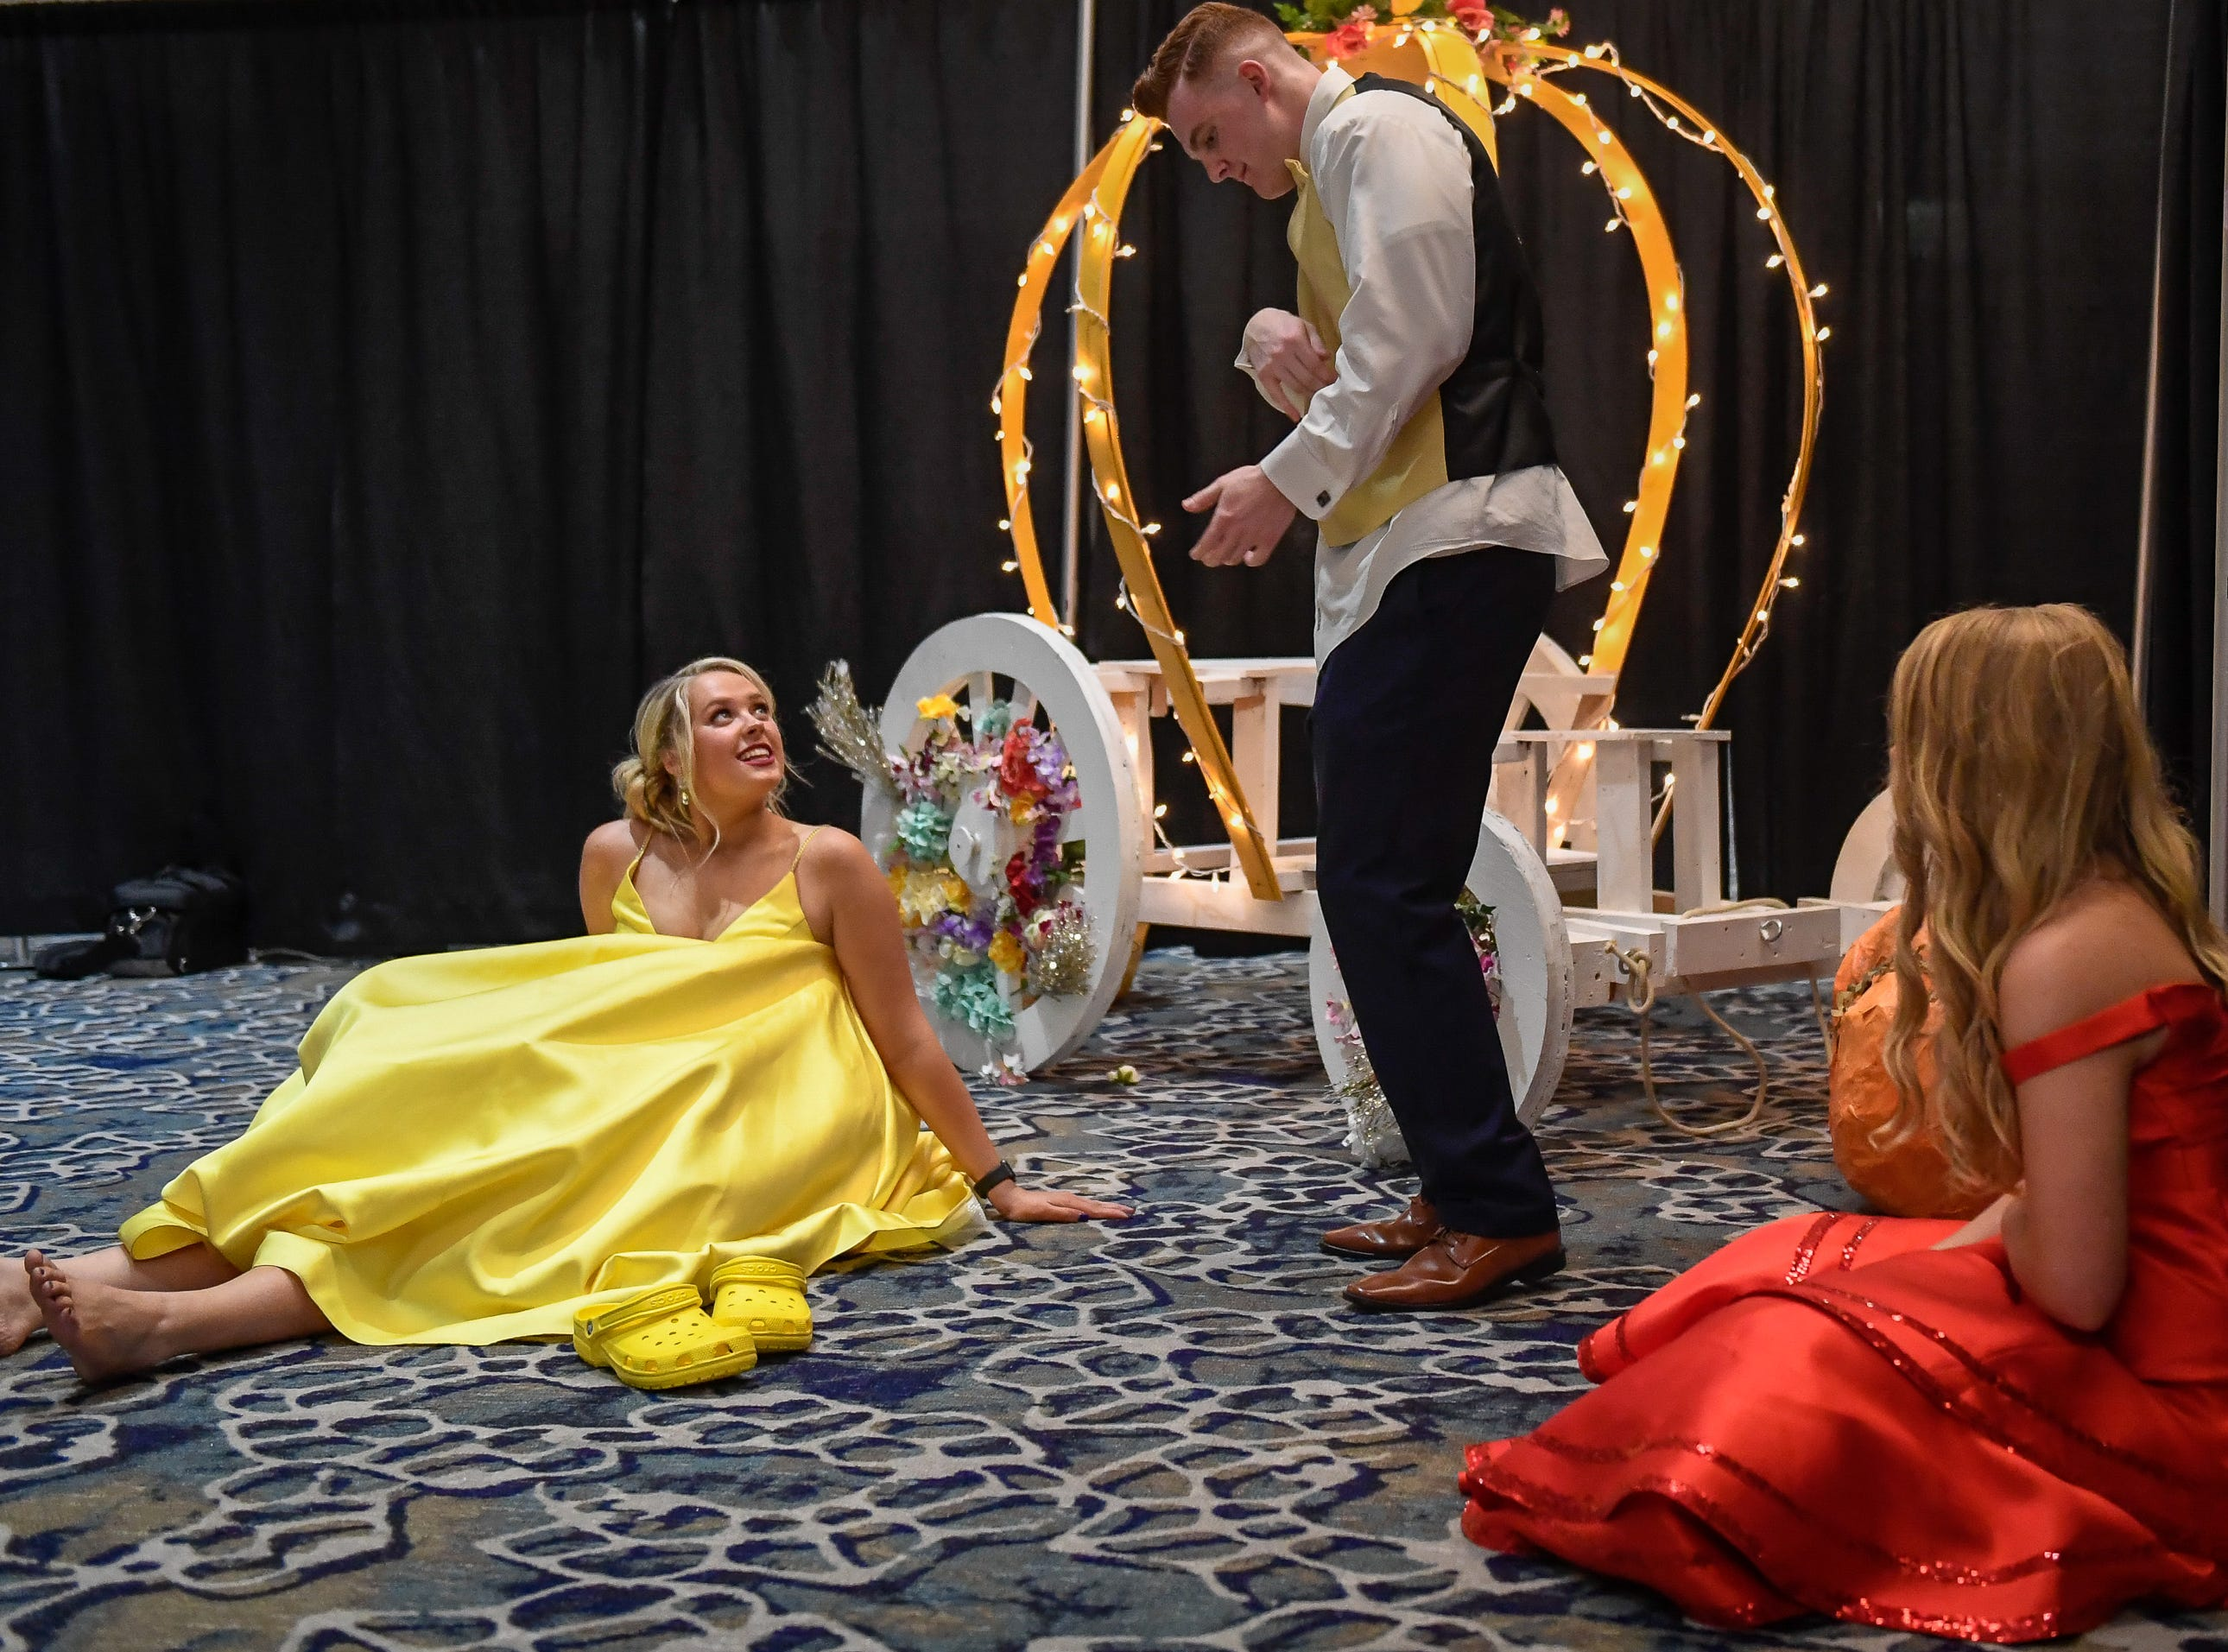 Max Green keeps the dancing going while Katelynn Davis, left, and Savannah Sullivan cool their heels at the Memorial High School prom, held at the Old National Events Center Plaza Saturday, April 27, 2019.